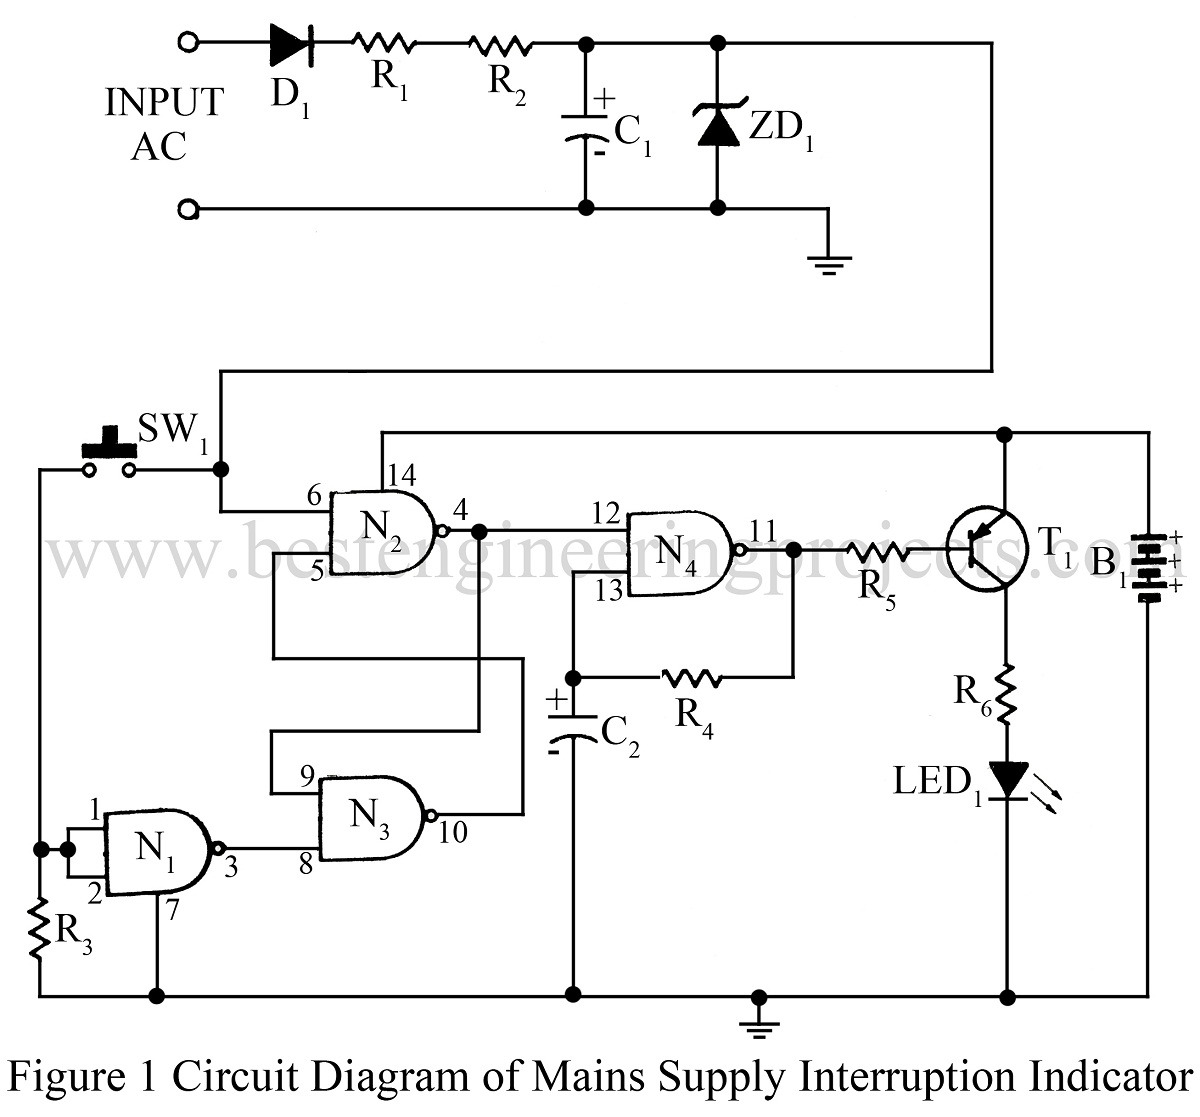 hight resolution of inverter circuit diagram moreover touch sensor circuit further nand gates logic inverter circuit diagram touch sensor circuit nand gate